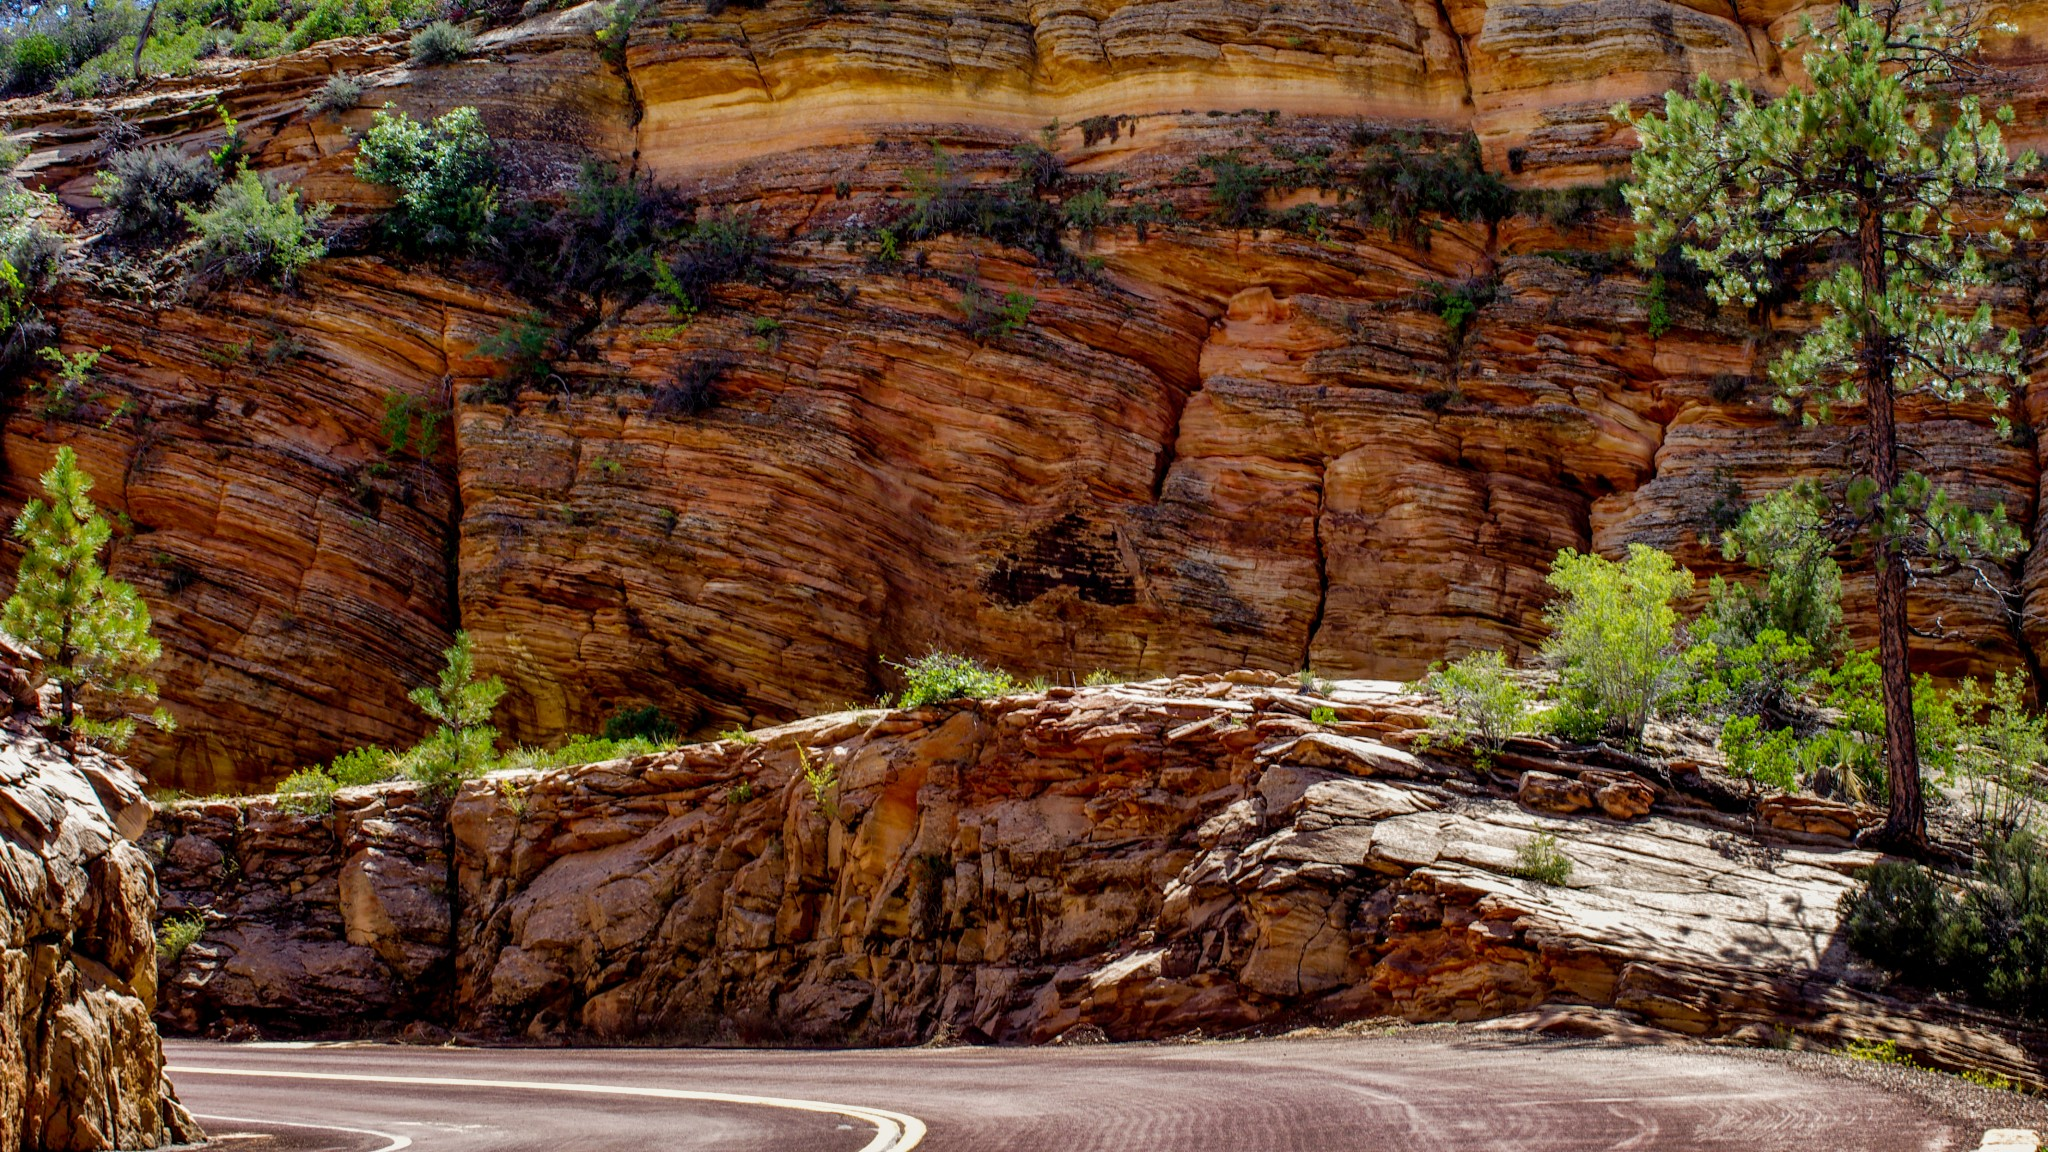 On Scenic Byway 9, Zion NP, UT